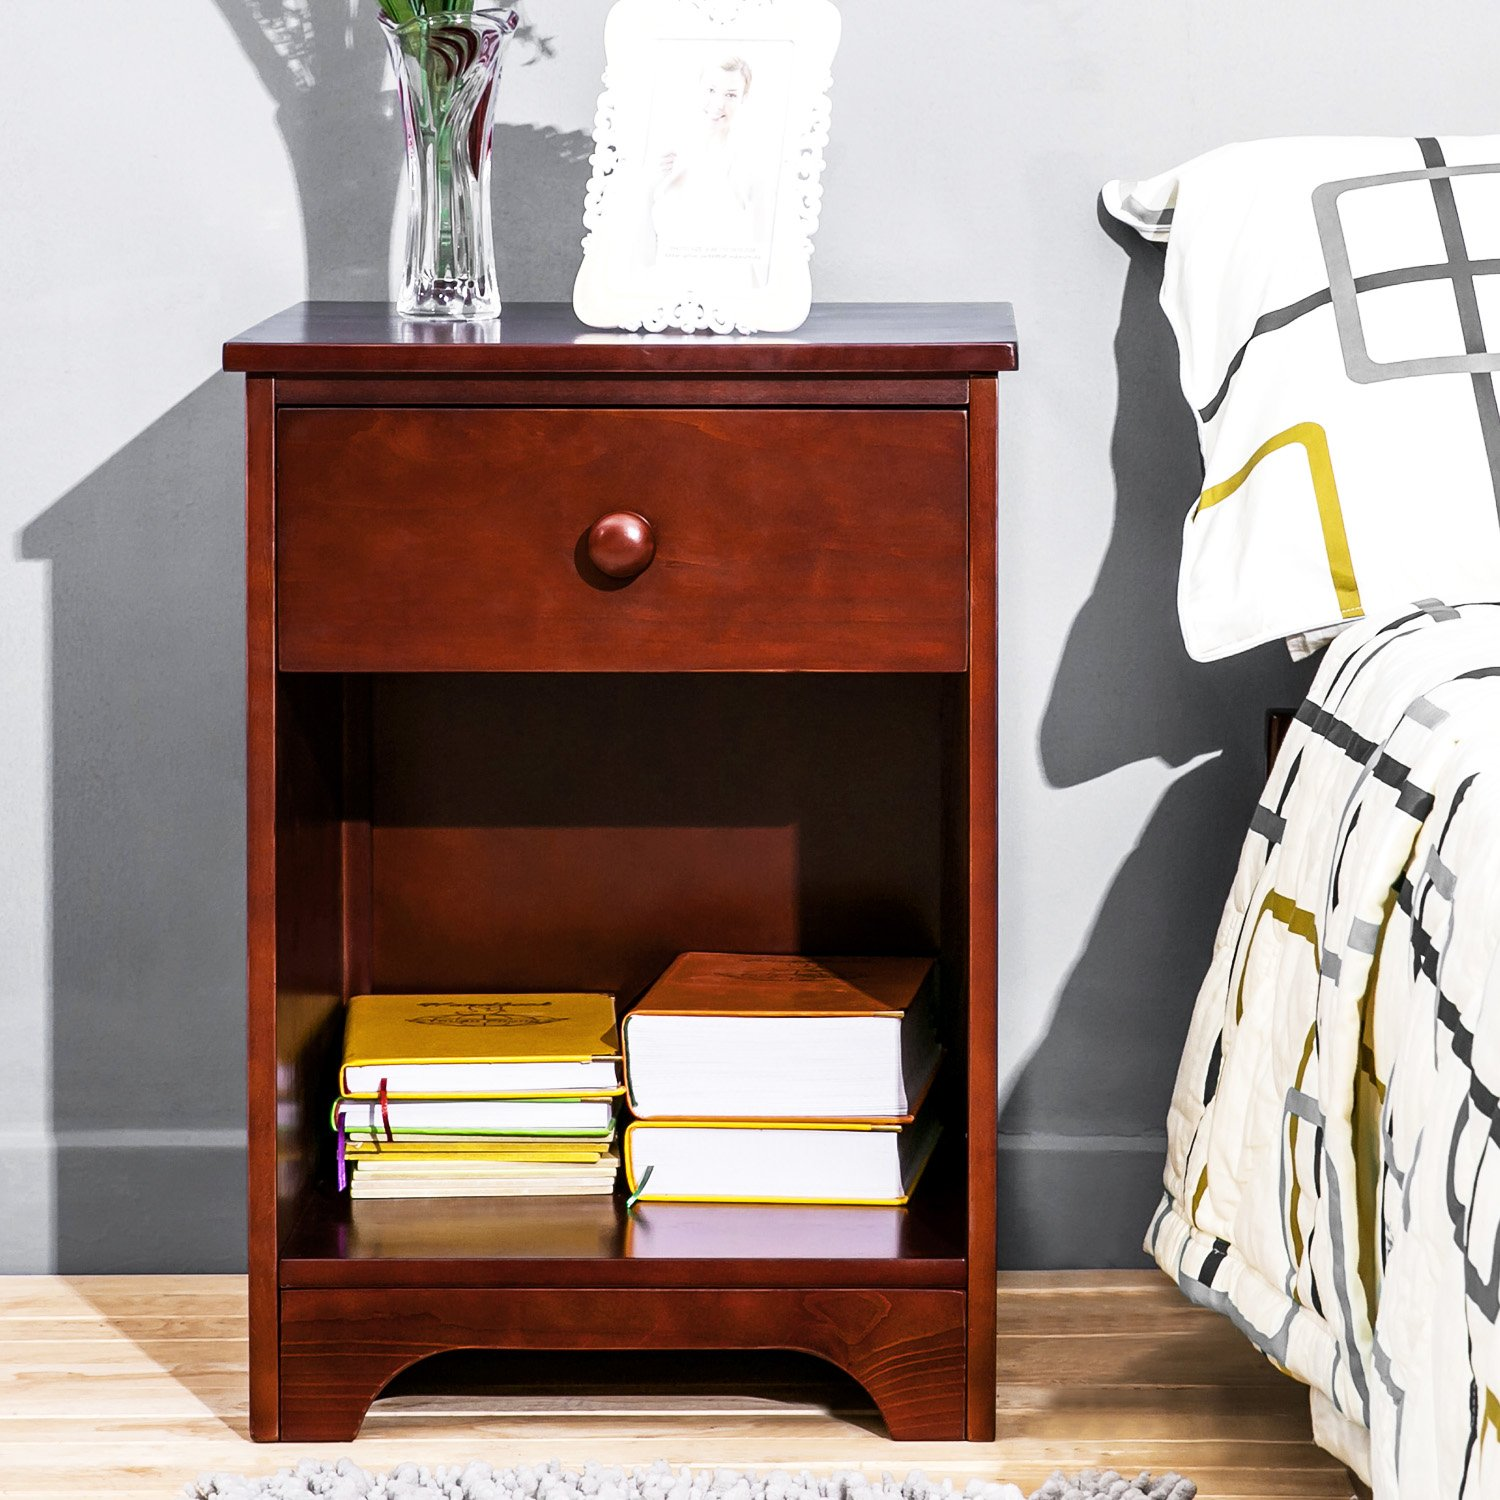 haper bright designs wooden accent table nightstand ectool eugene walnut side with storage shelf and drawer for bedrooms finish kitchen dining nautical pole lamps armless chair